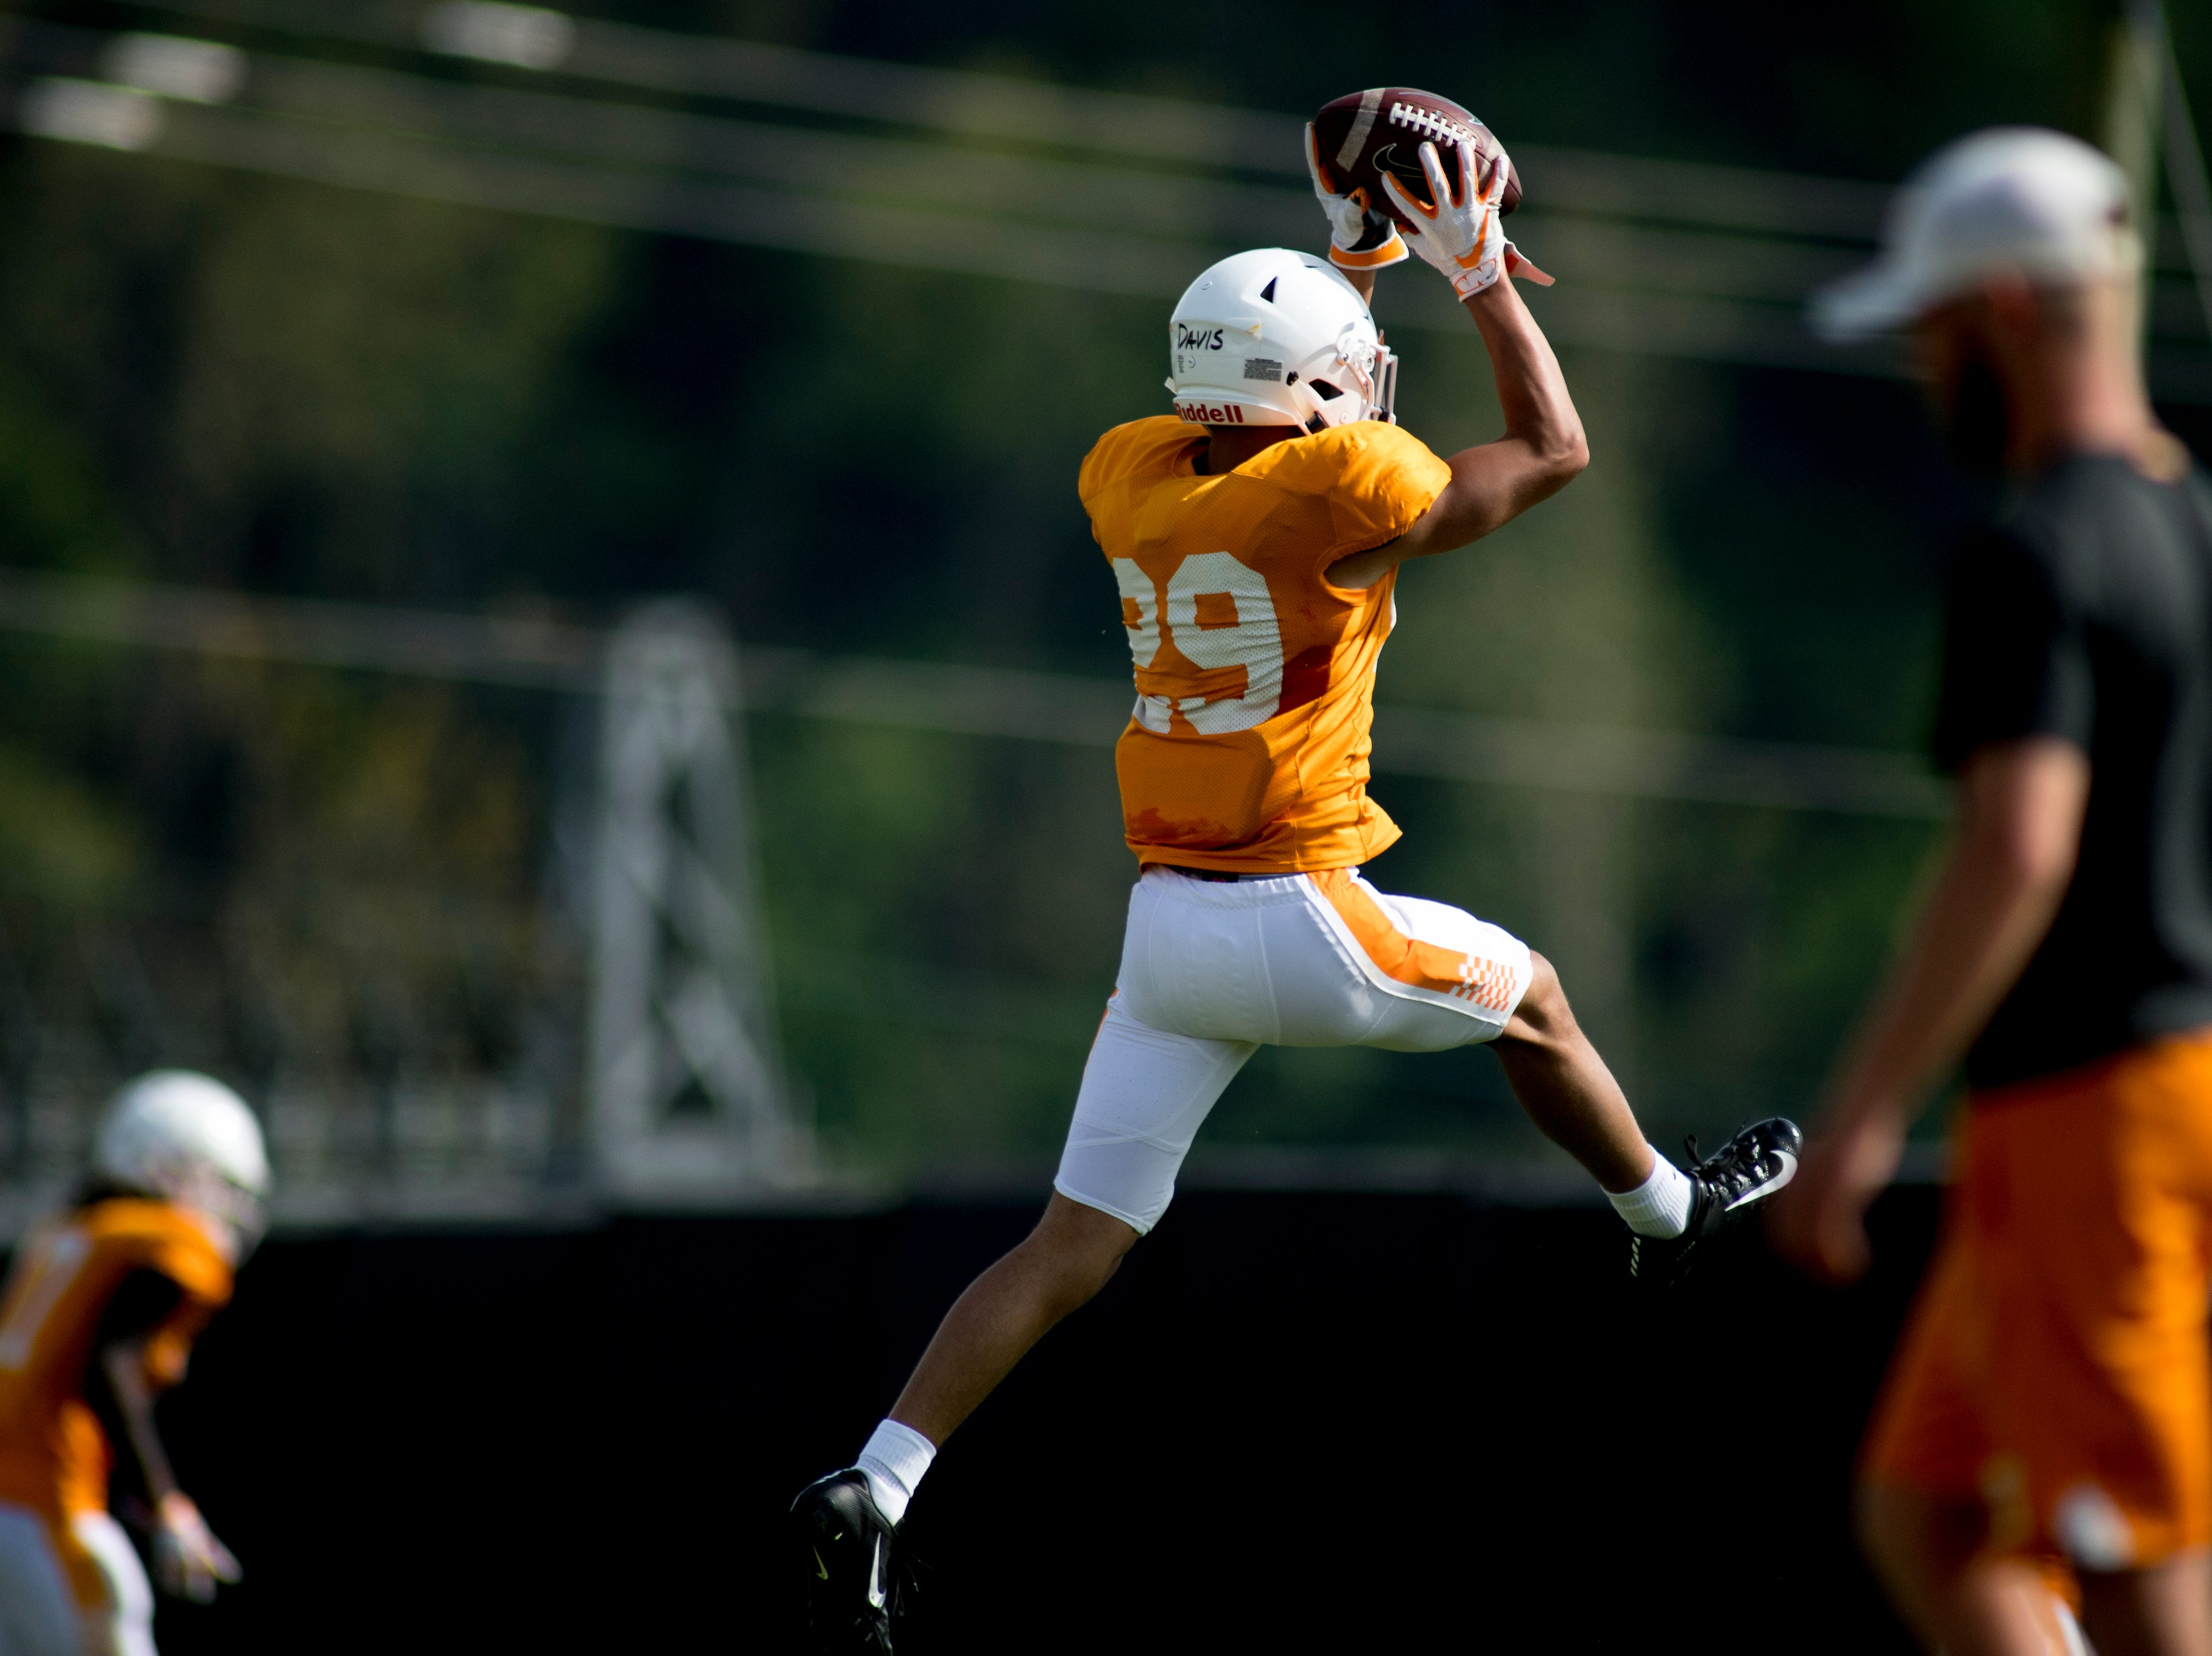 Tennessee's Brandon Davis (29) catches the ball during Tennessee spring practice at Haslam Field in Knoxville, Tennessee on Thursday, April 11, 2019.